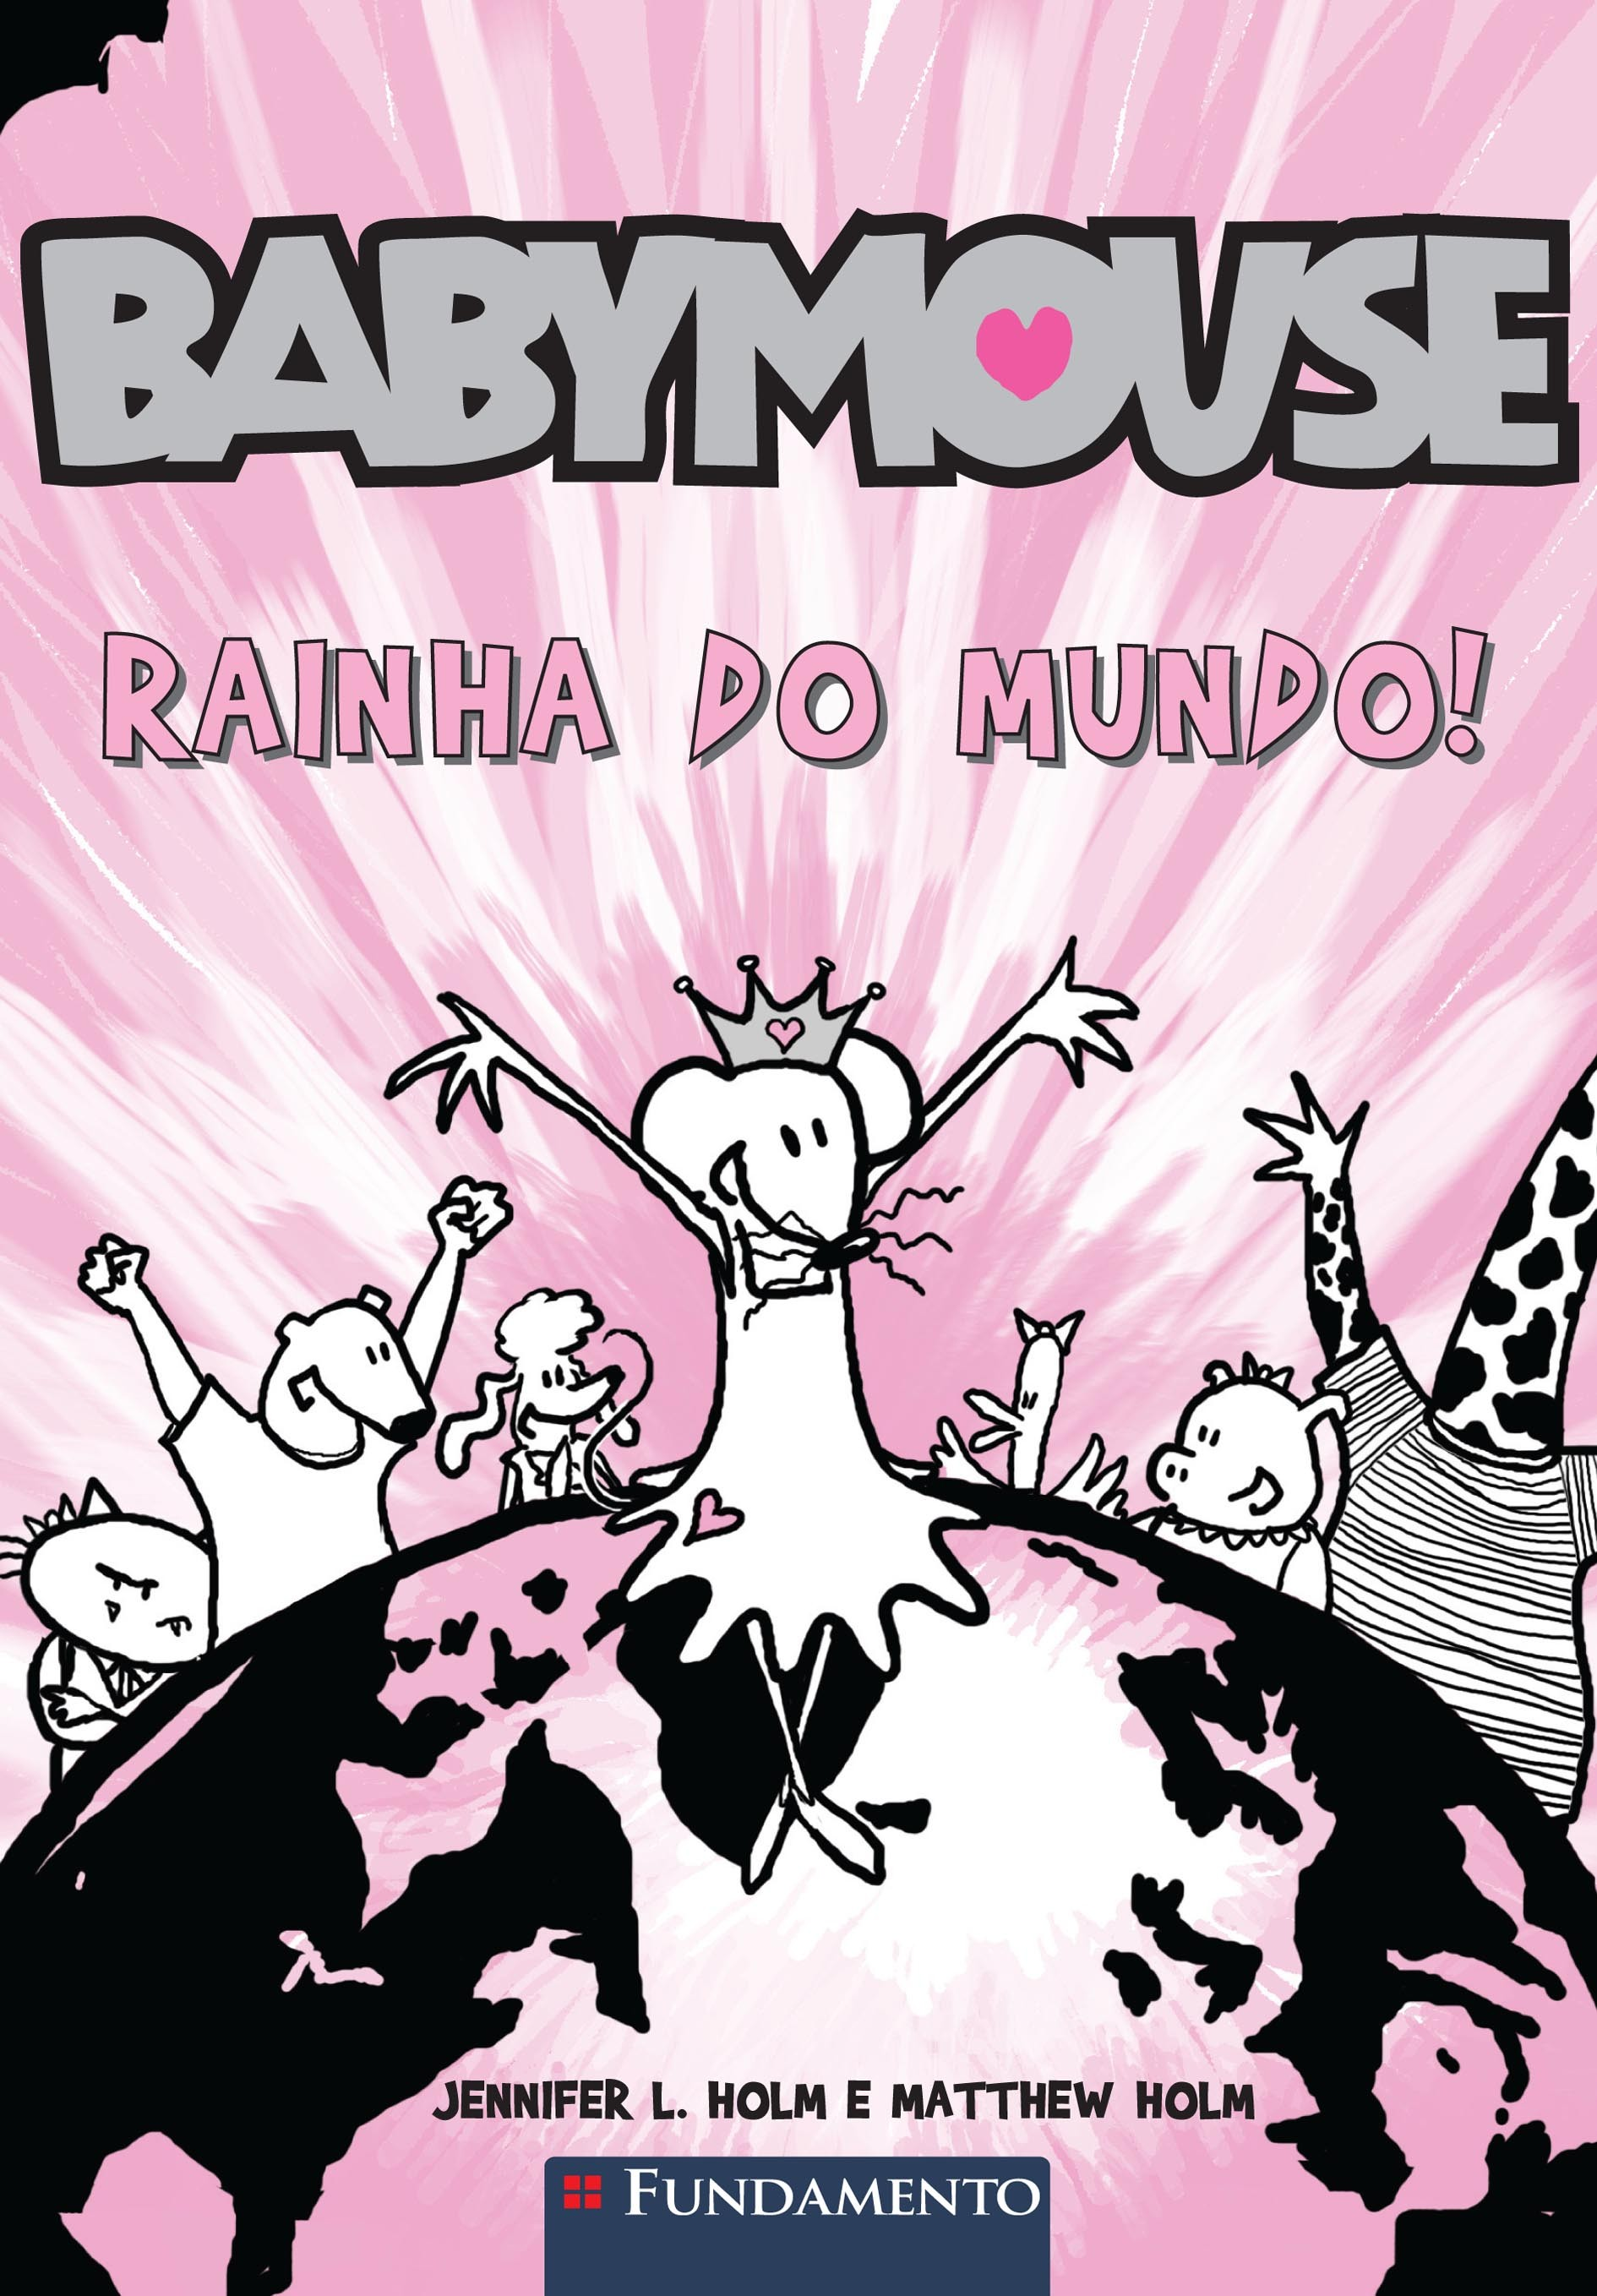 Babymouse - Rainha do mundo